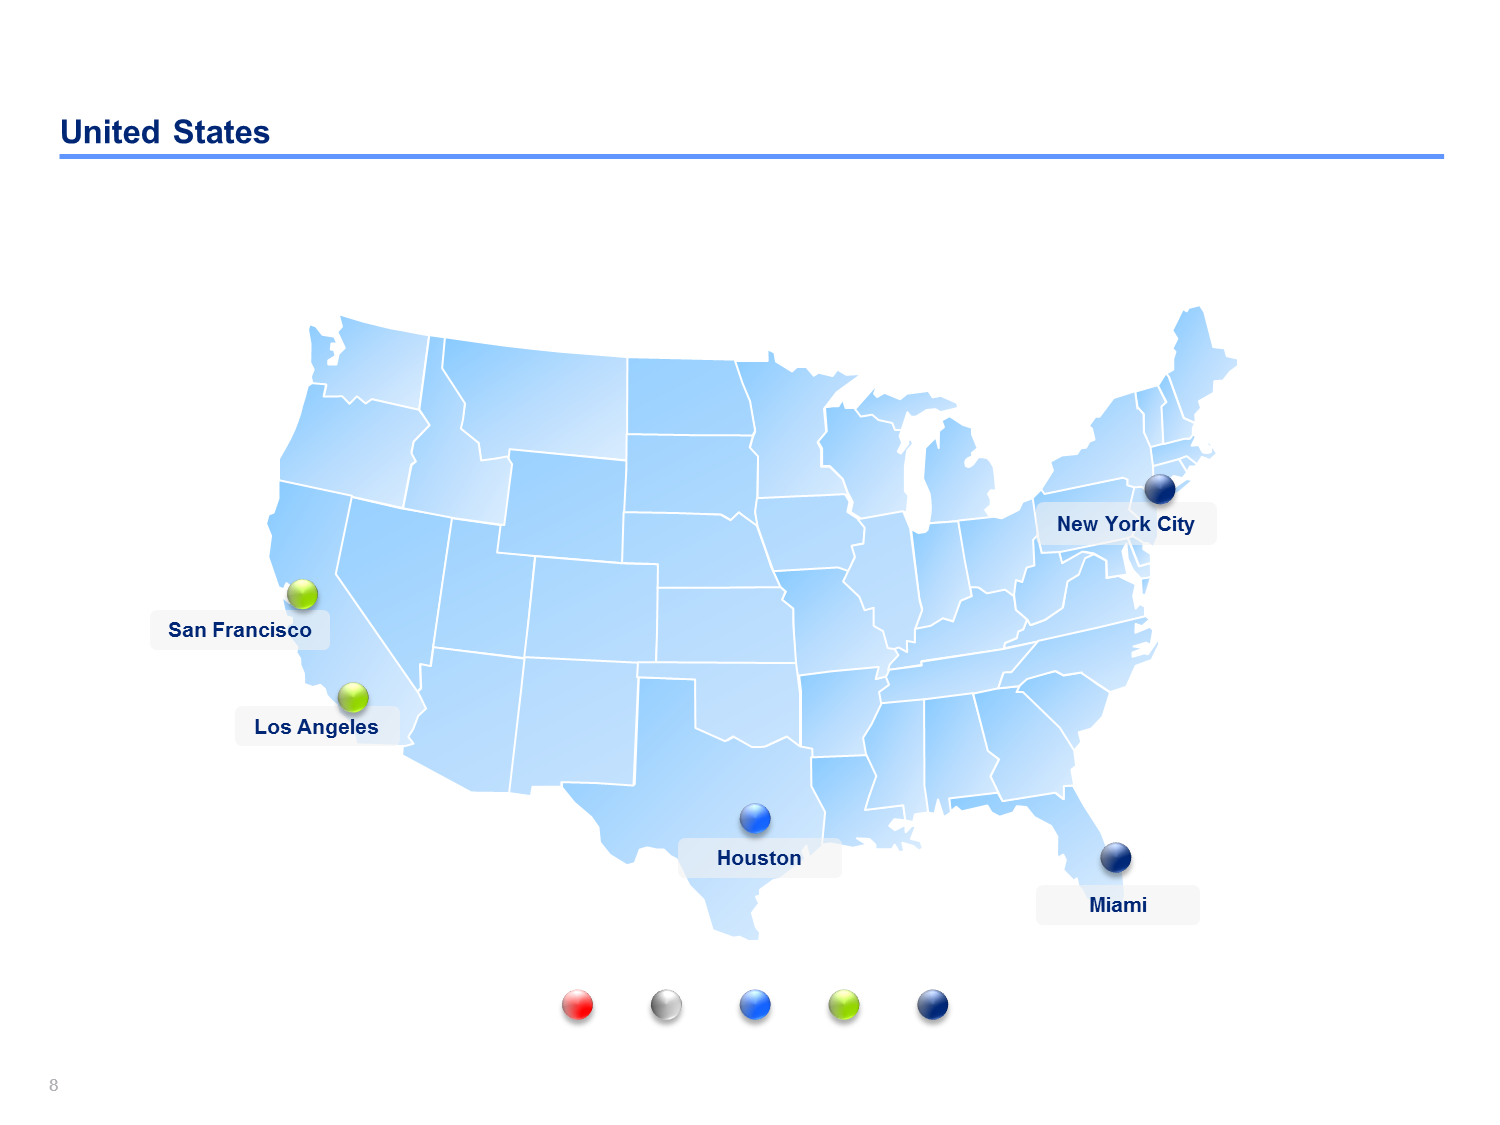 US Map Templates | Editable US Maps in Powerpoint ...